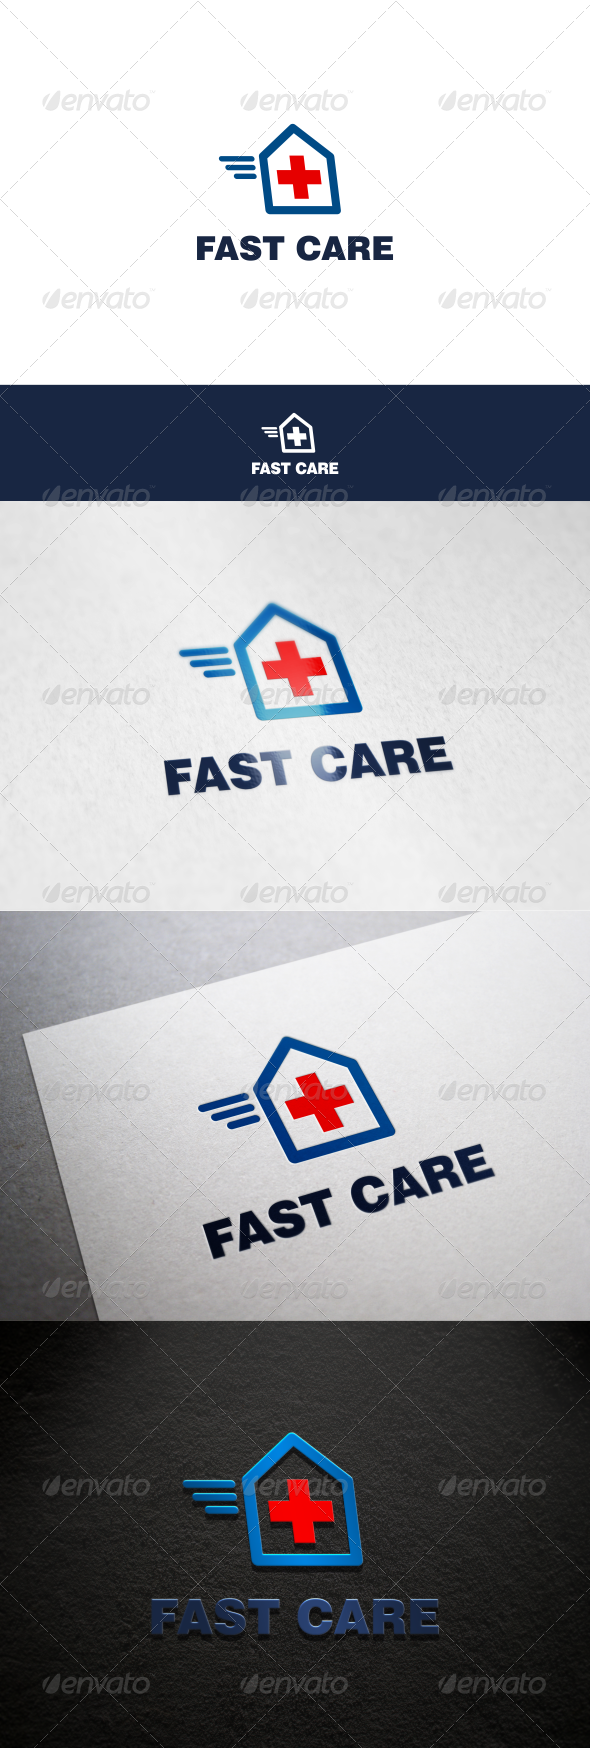 GraphicRiver Fast Care Logo 8636930